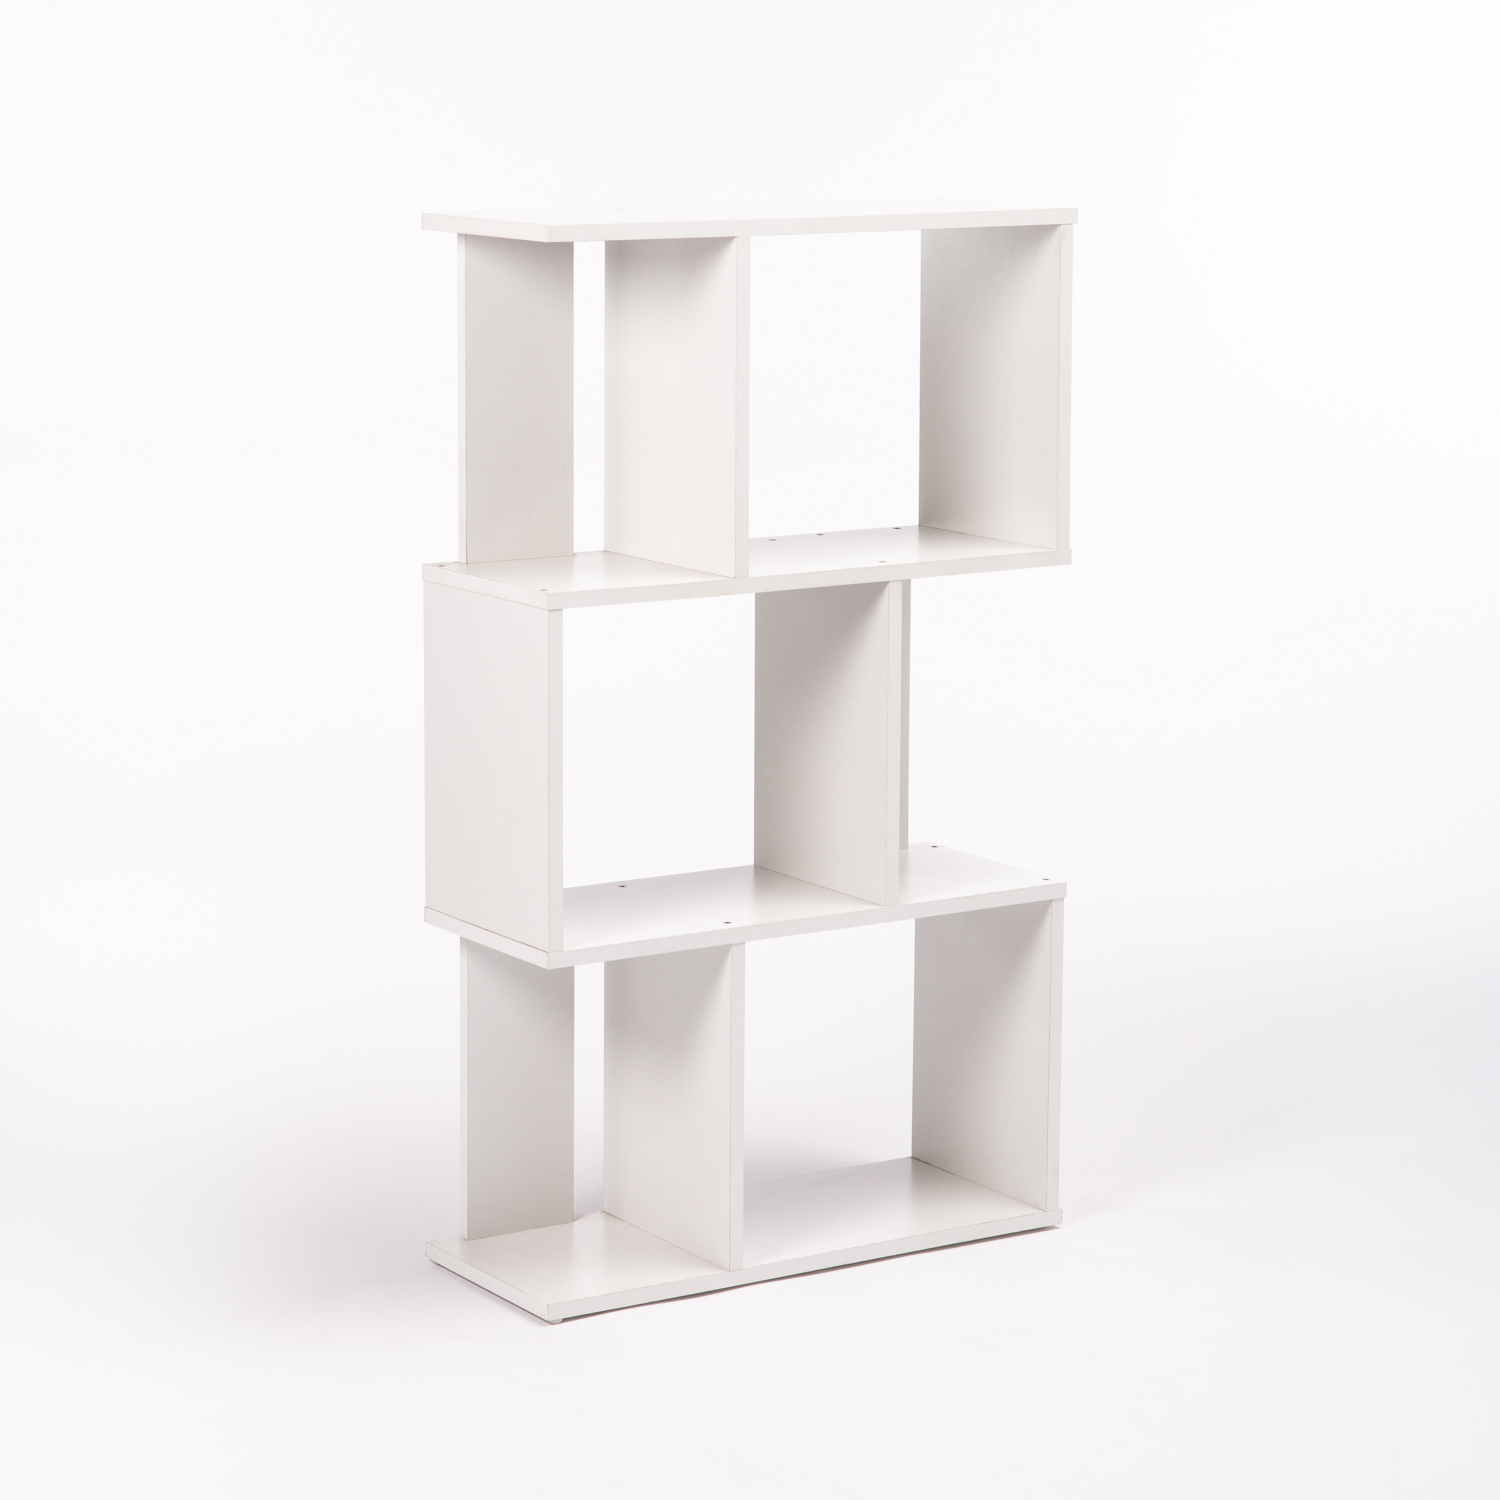 Air Modular 3 Shelf Unit - White